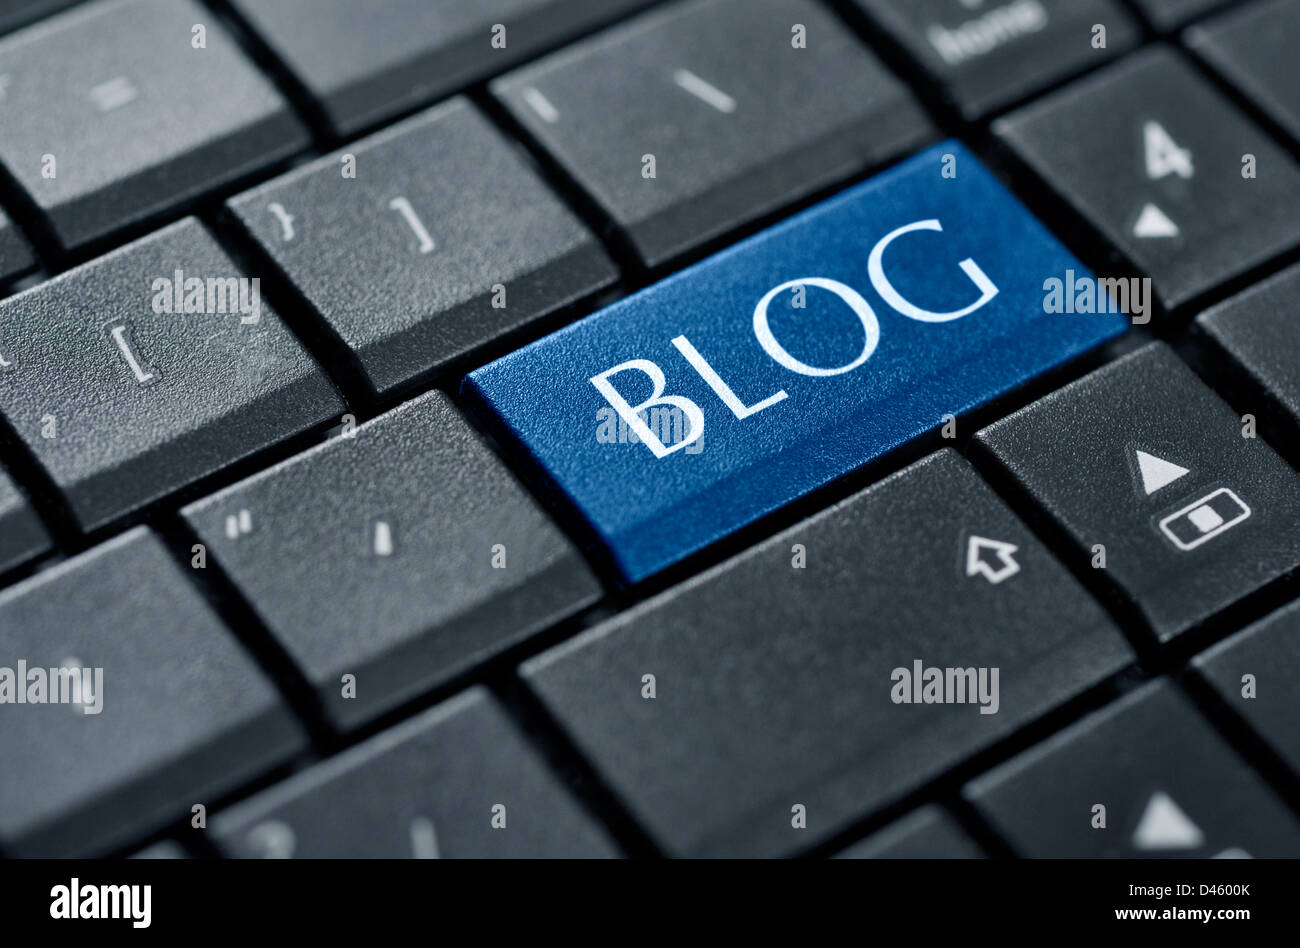 Modern keyboard with blog text on enter key. - Stock Image